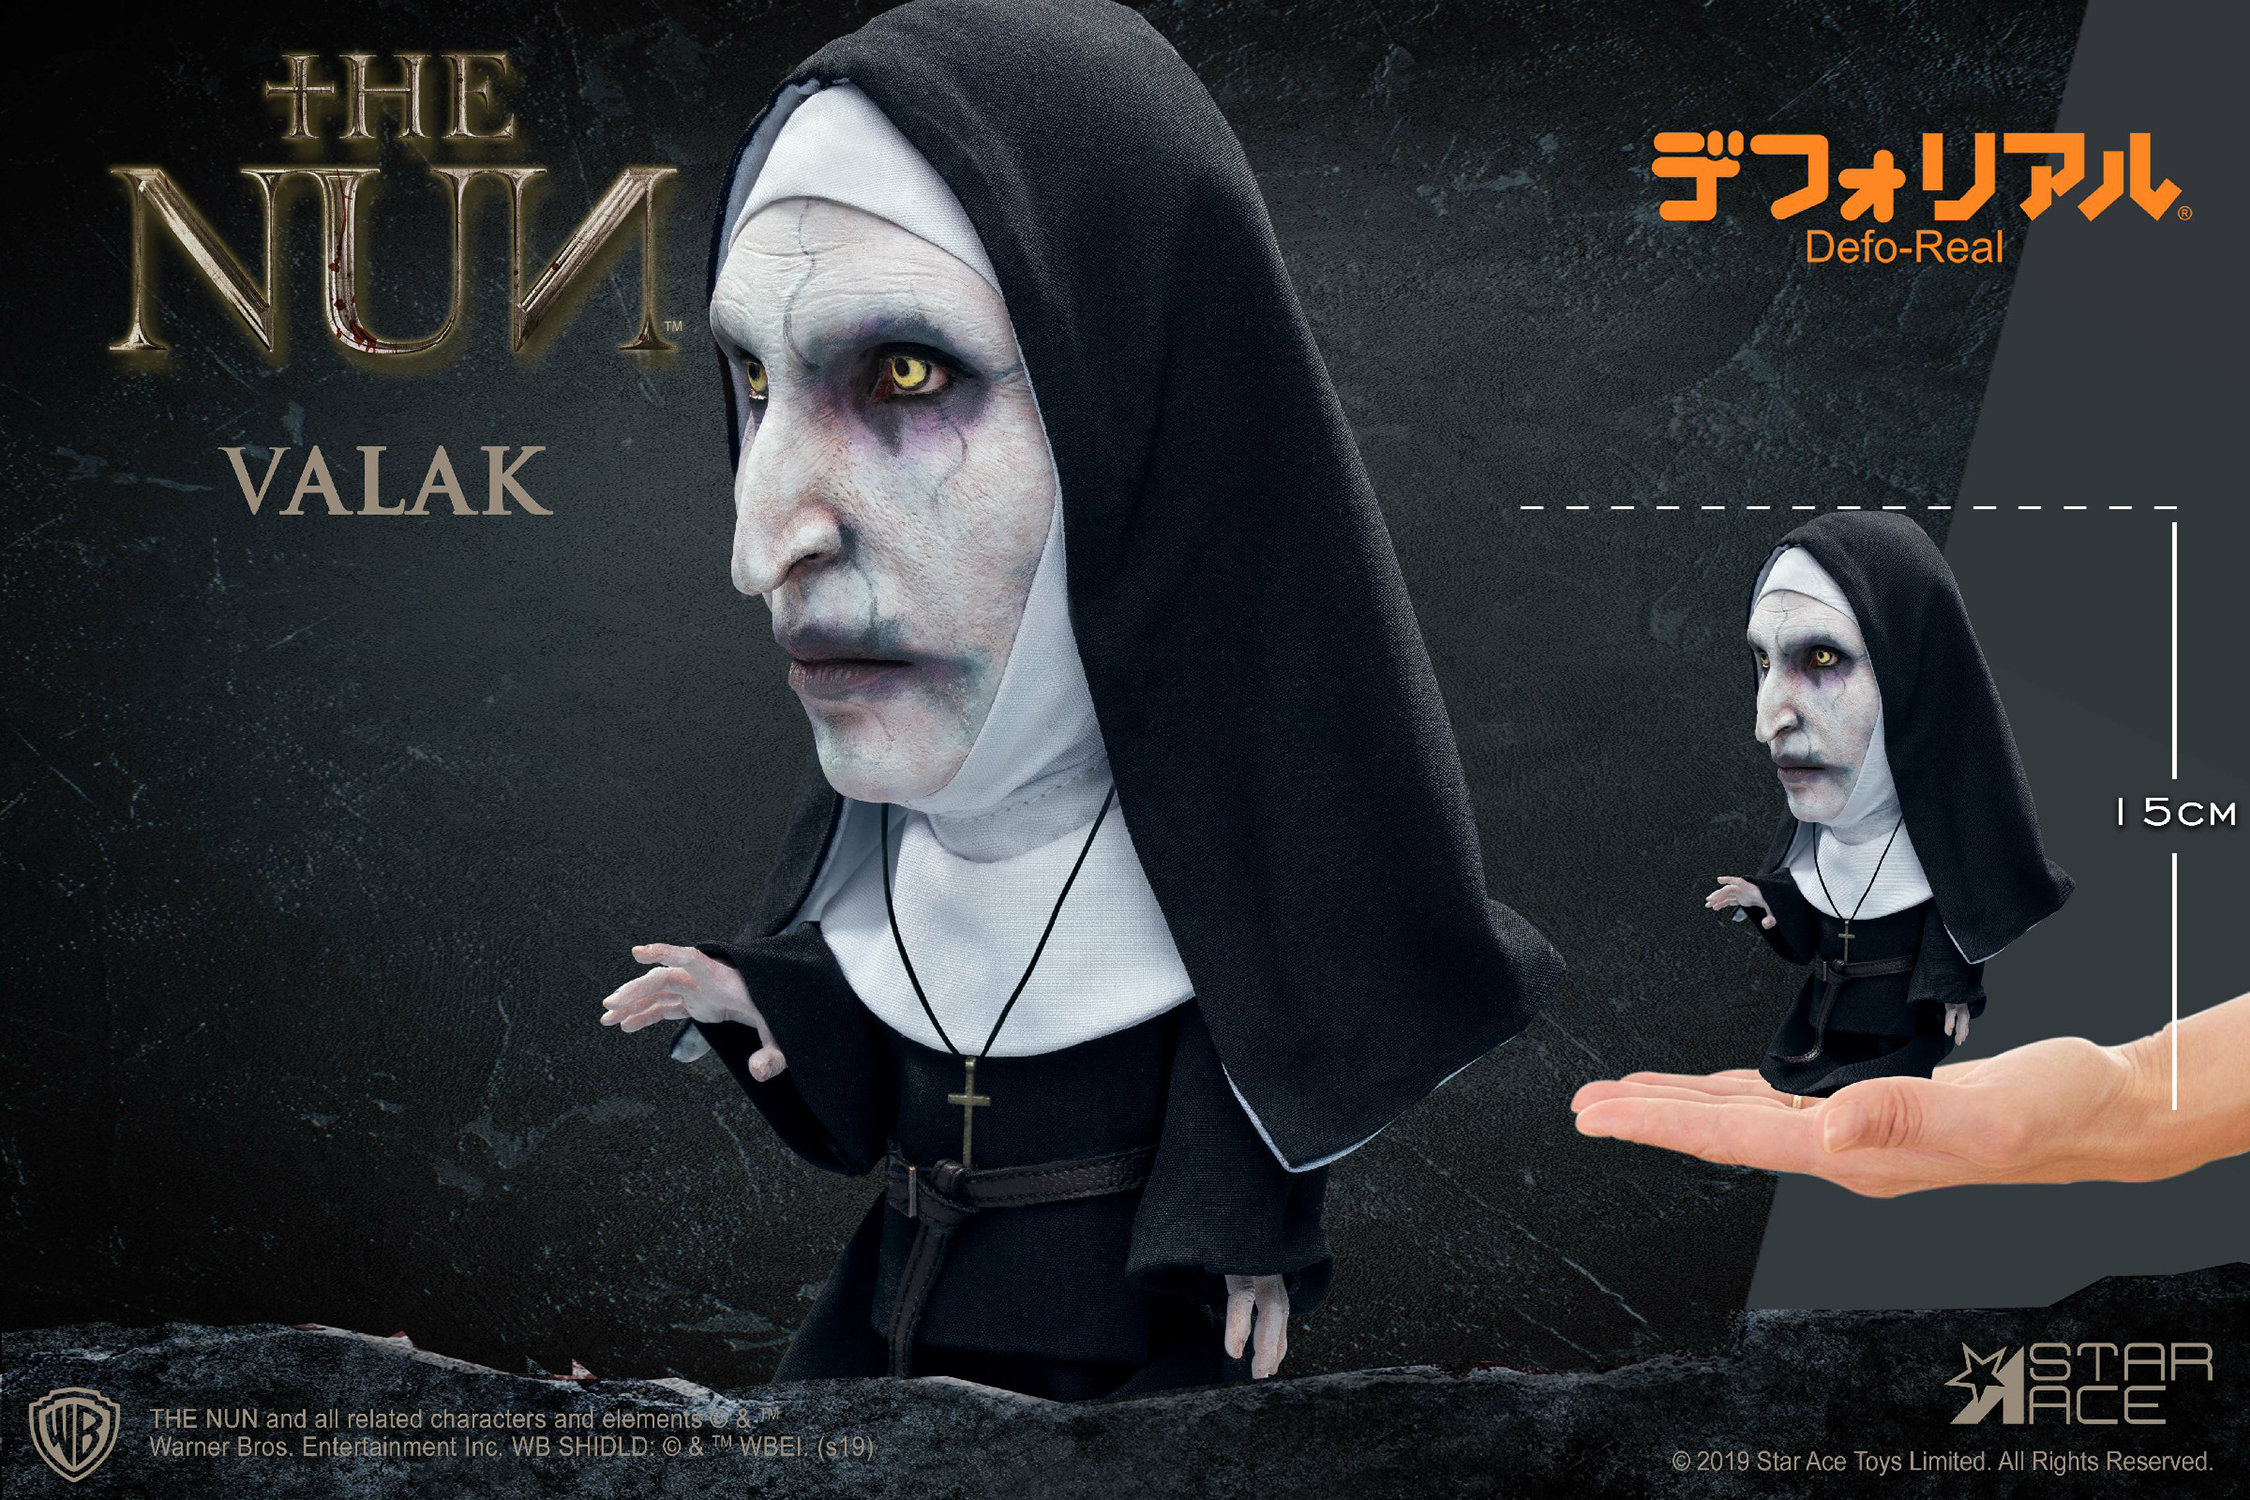 THE NUN VALAK CLOSED MOUTH DEFO REAL SOFT VINYL STATUE